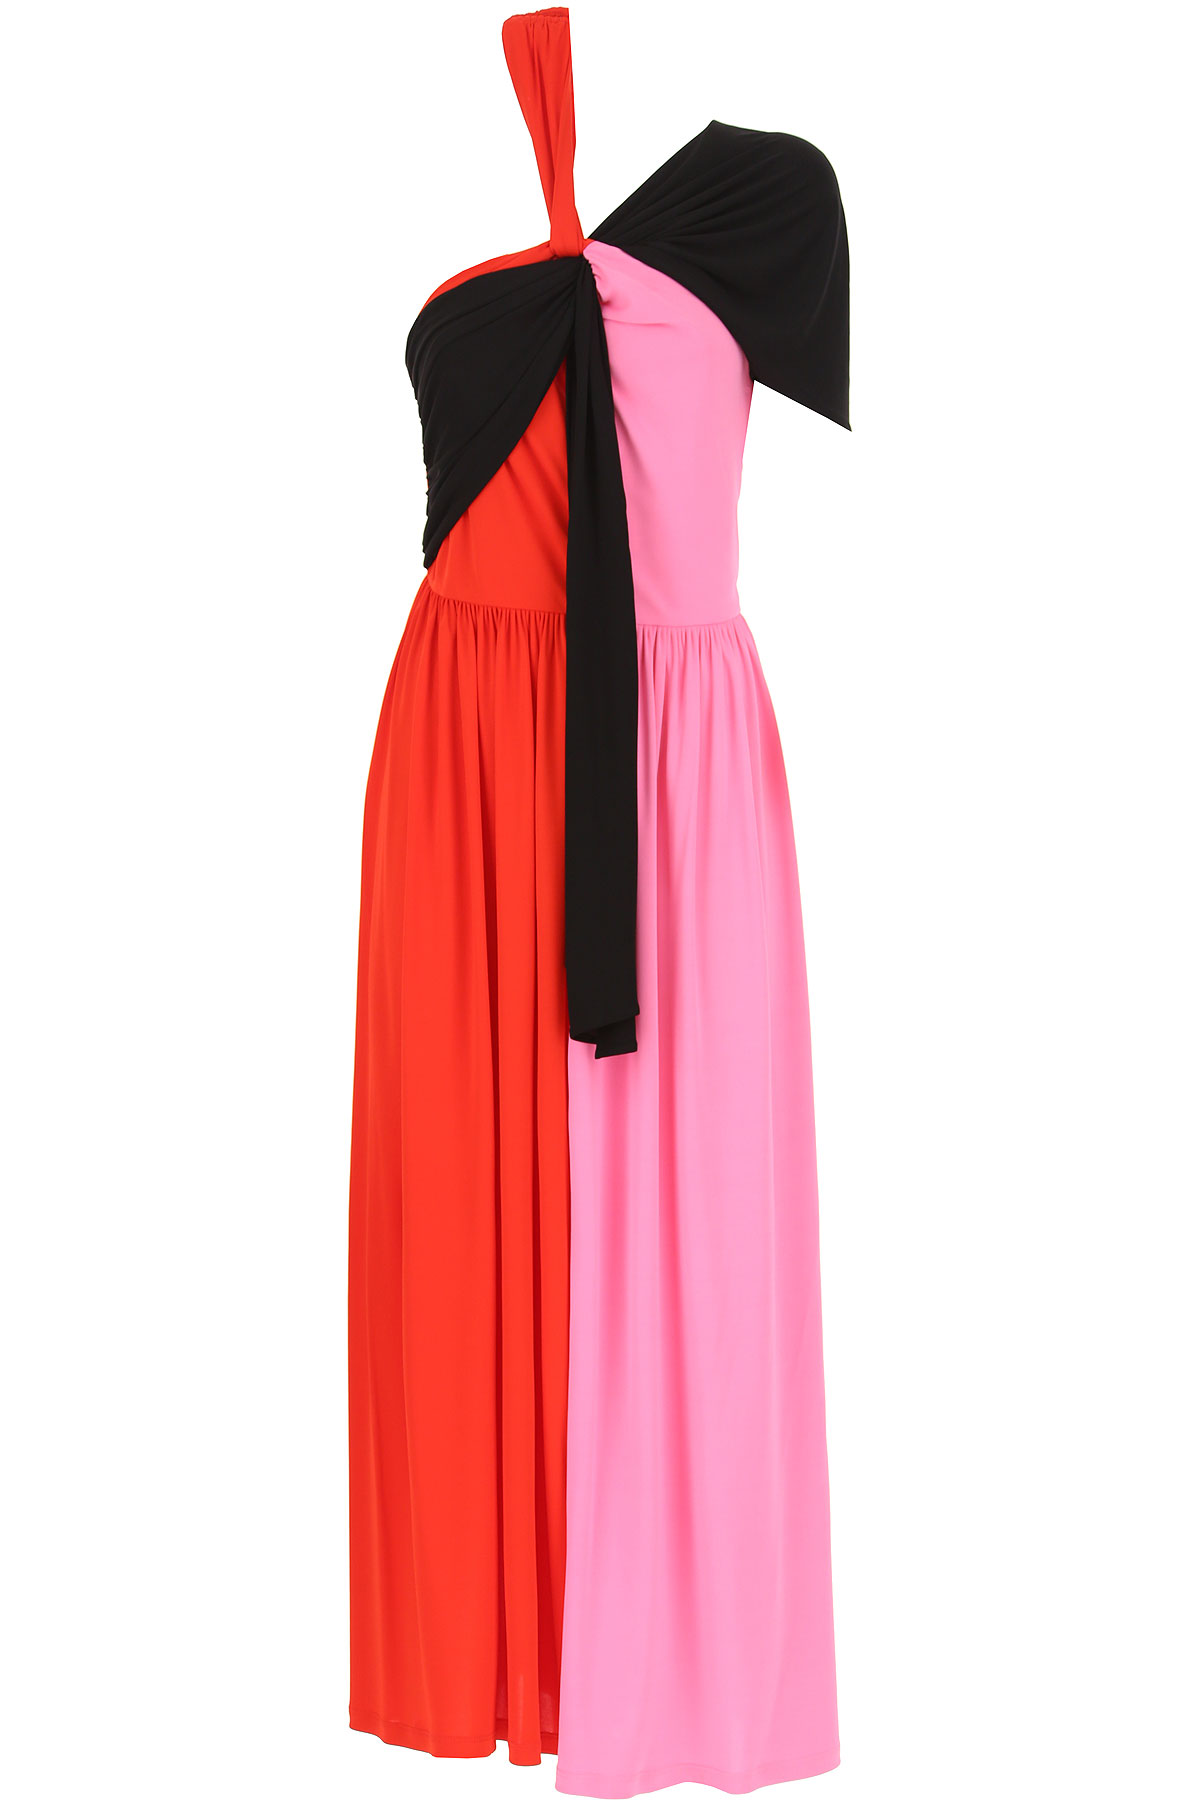 MSGM Dress for Women, Evening Cocktail Party, Pink, Viscose, 2017, 4 4 6 8